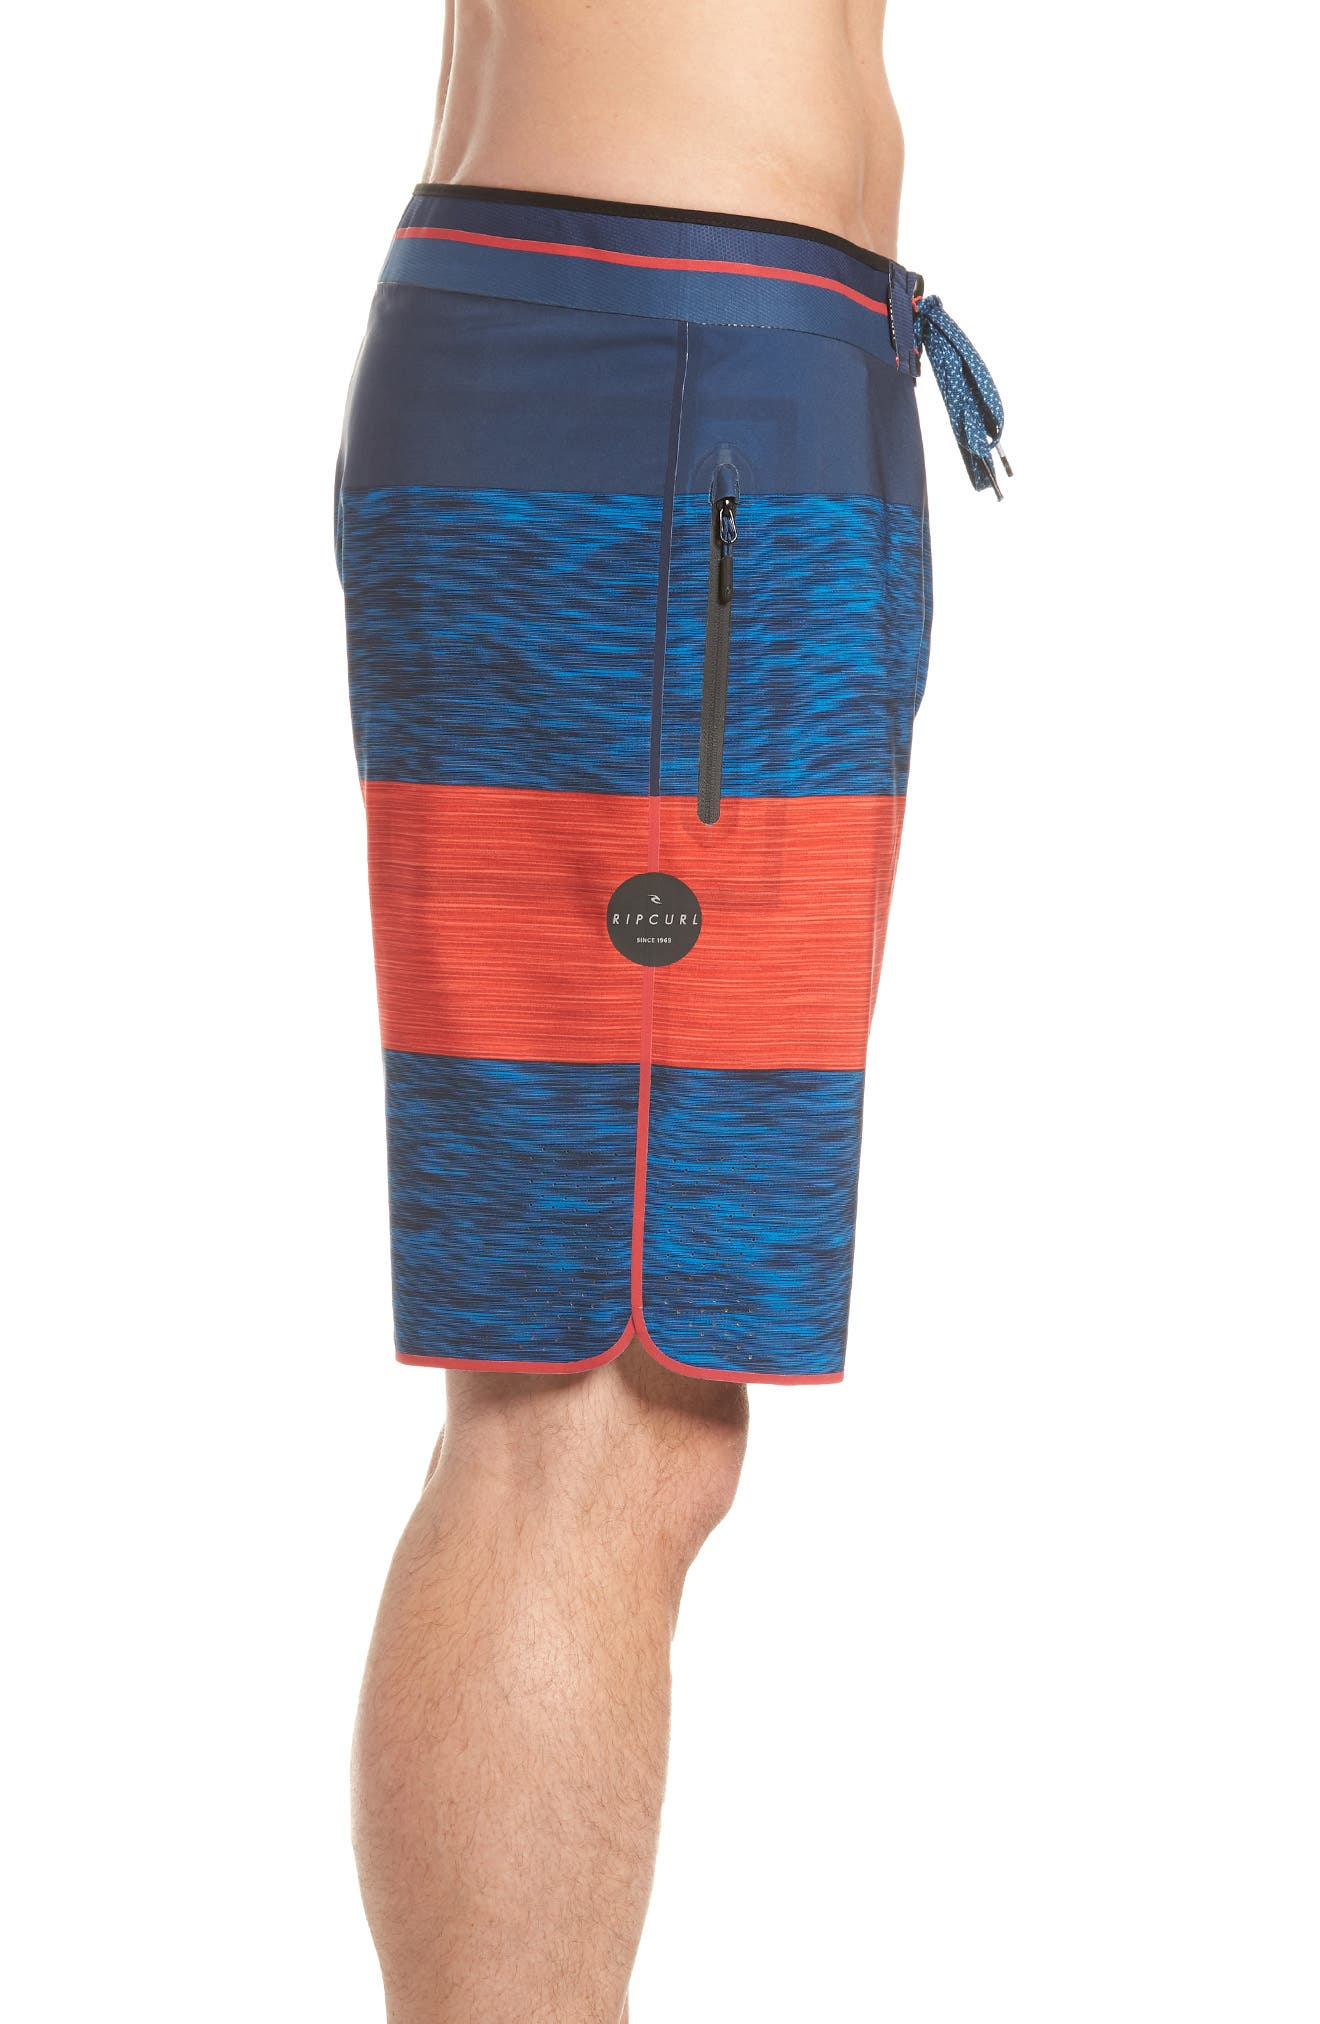 Mirage Bends Ultimate Board Shorts,                             Alternate thumbnail 6, color,                             Navy